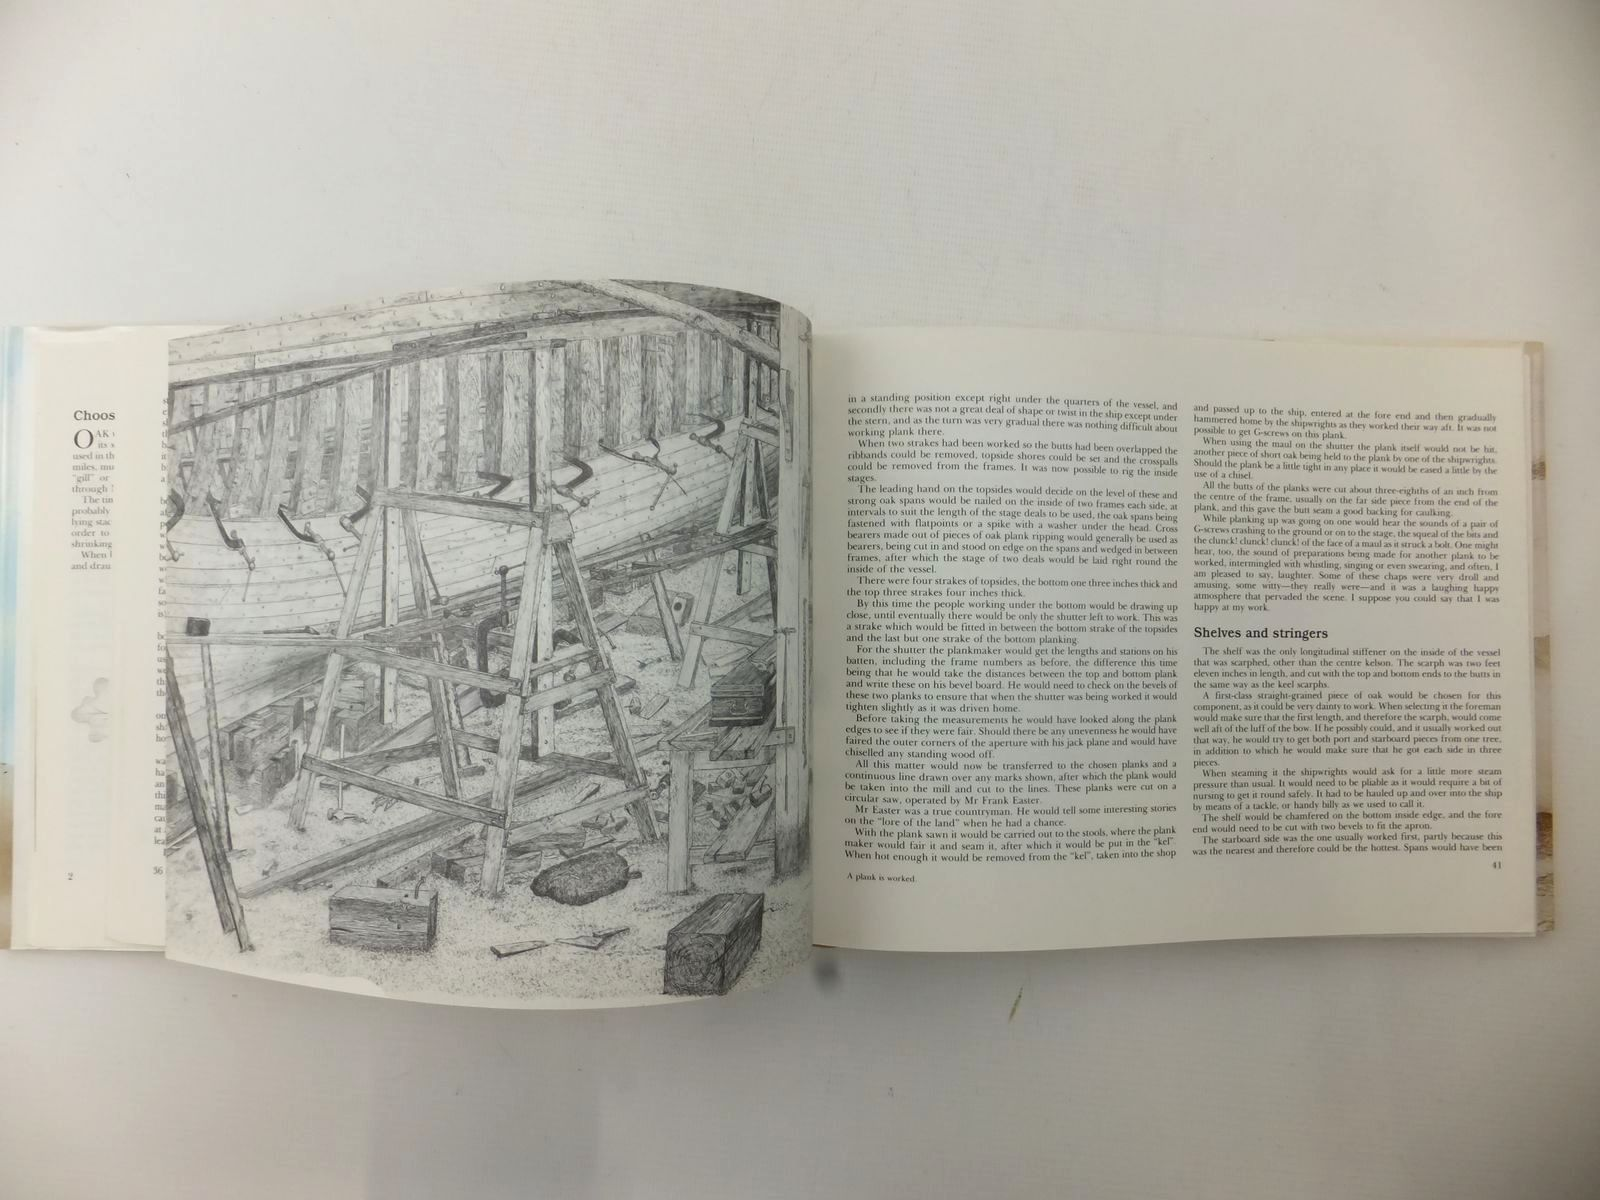 Photo of FROM TREE TO SEA THE BUILDING OF A WOODEN STEAM DRIFTER written by Frost, Ted illustrated by Frost, Ted published by Terence Dalton Limited (STOCK CODE: 2122869)  for sale by Stella & Rose's Books